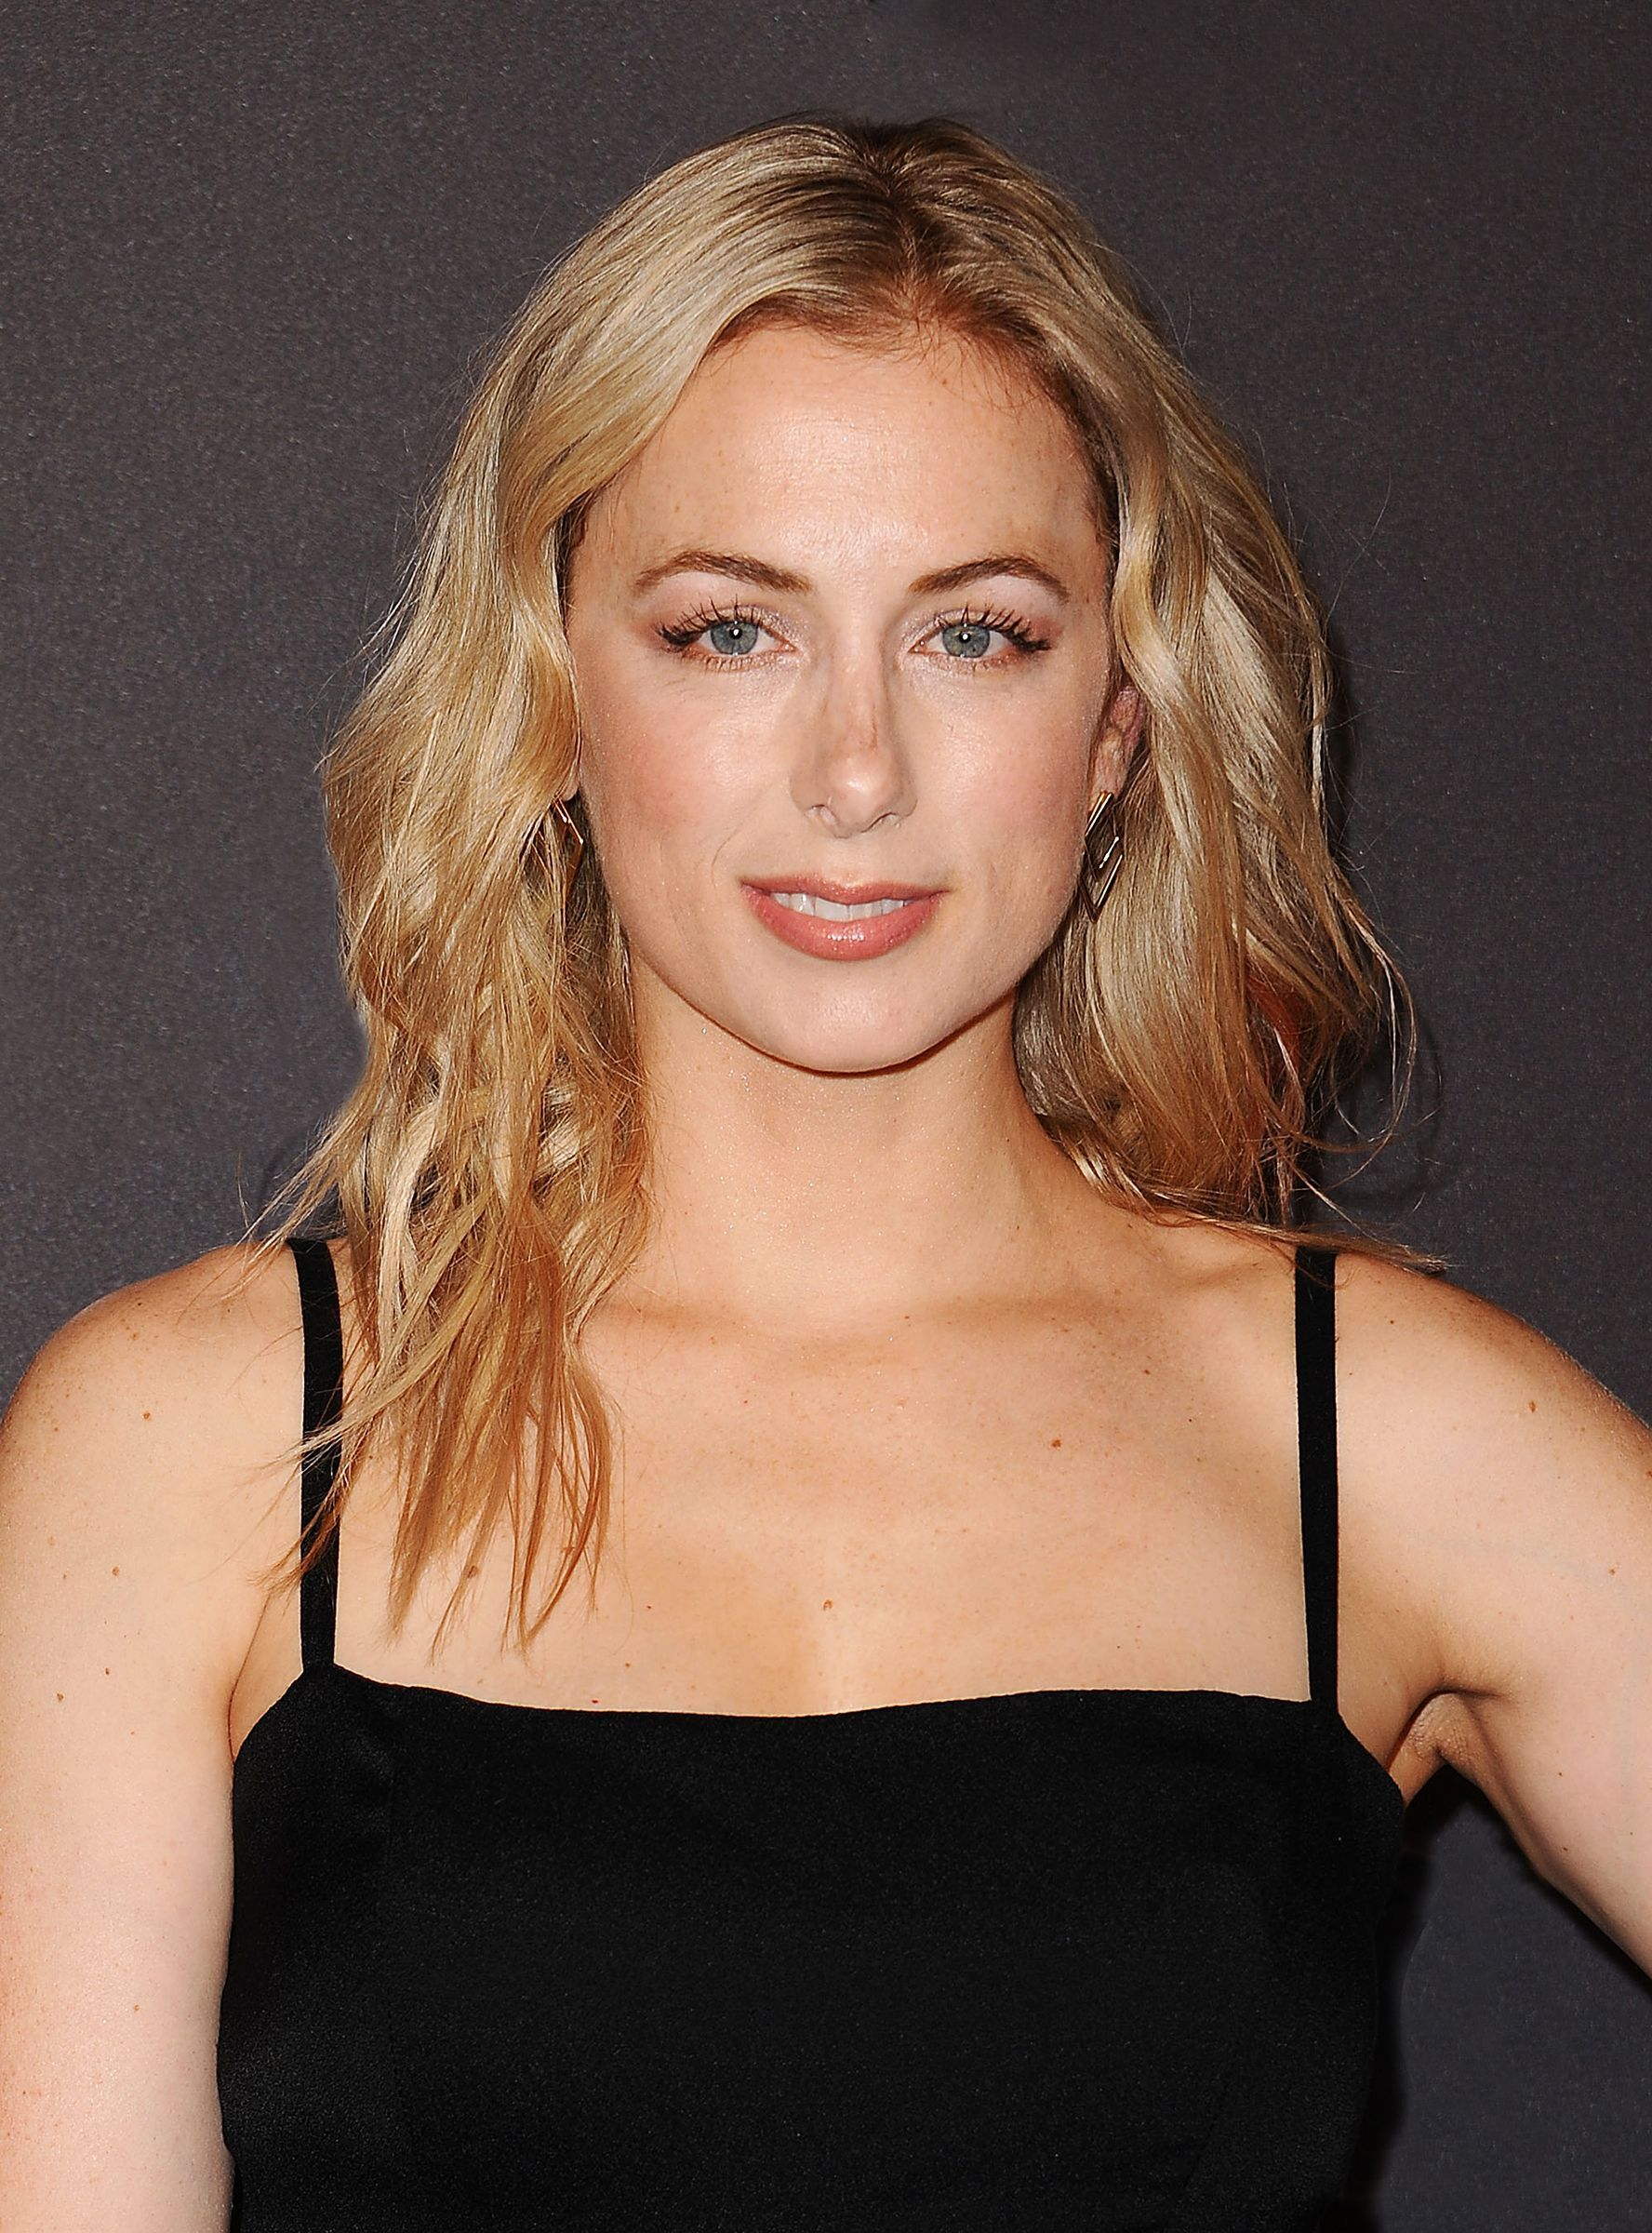 Iliza Shlesinger Is Being Sued For Hosting A Comedy Show